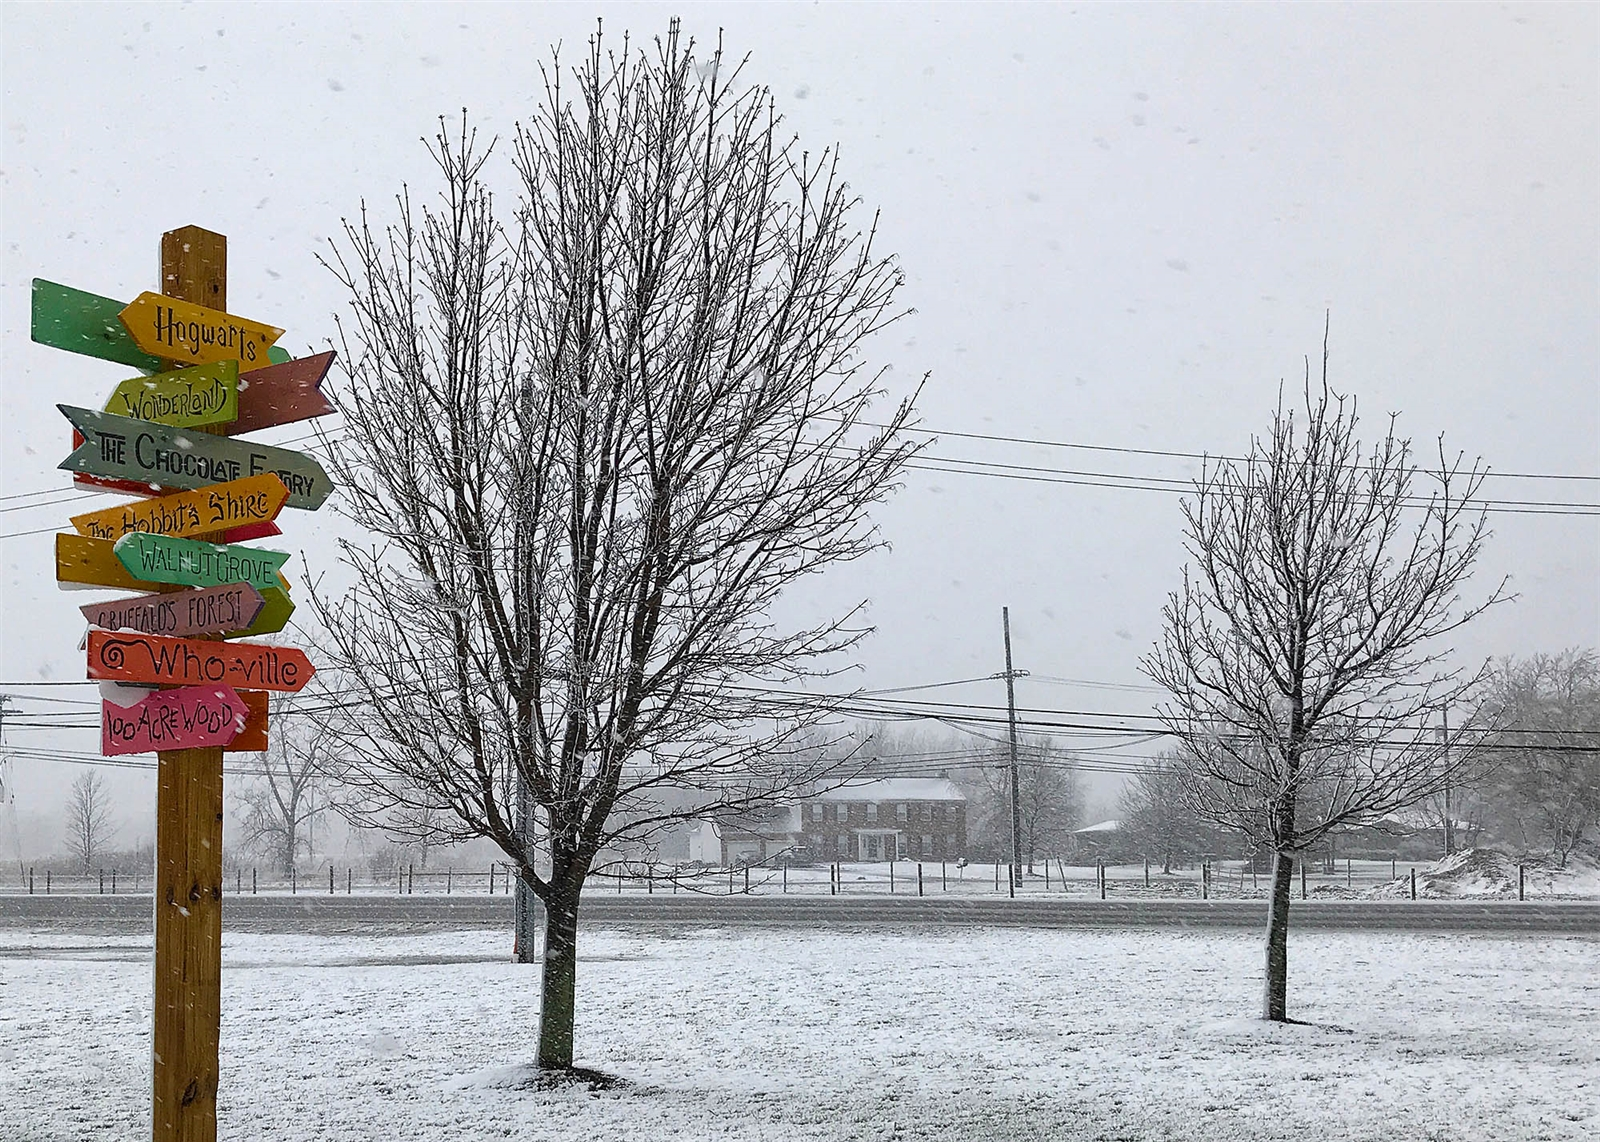 Day 106: April 17, 2018 - A brightly painted sign post in front of the Clarence Public Library stands out against a late spring snow.